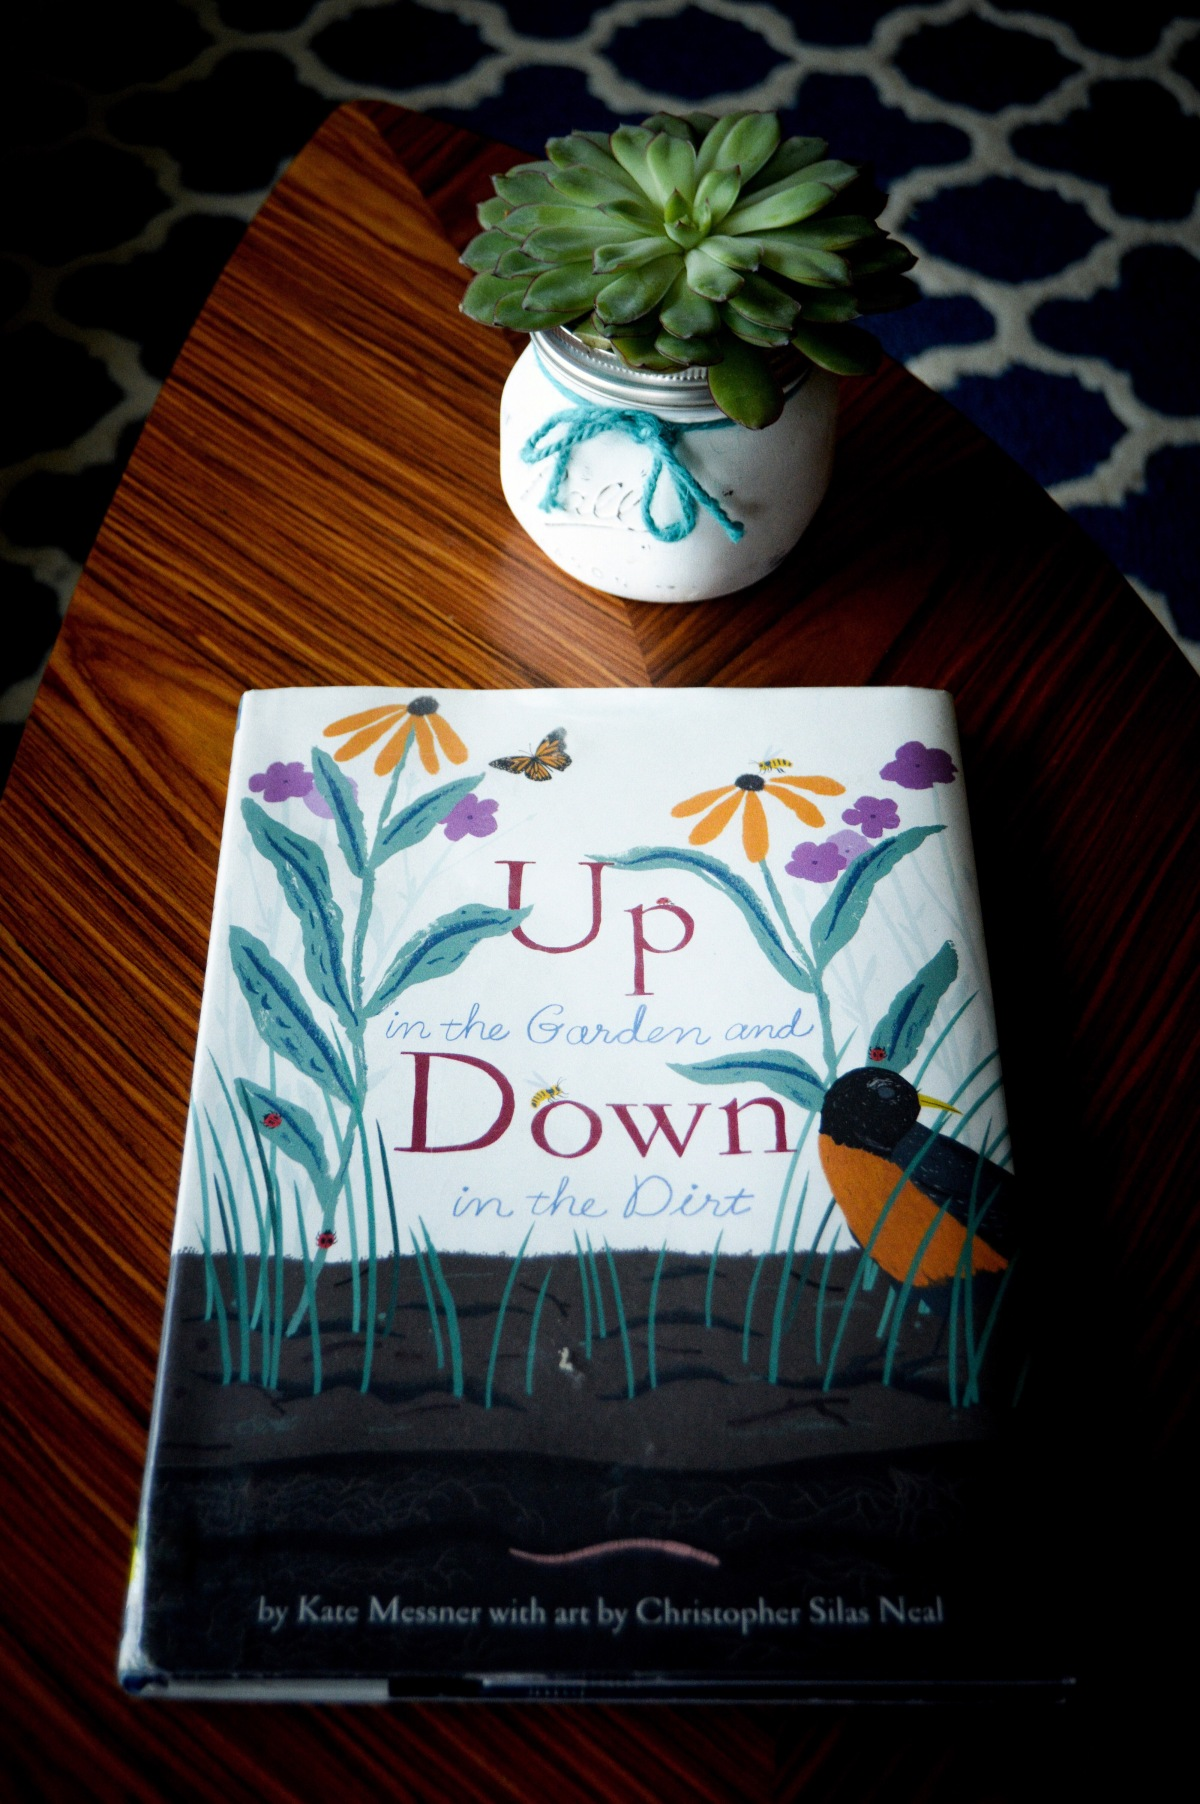 Sunday Book Club: Up in the Garden and Down in the Dirt